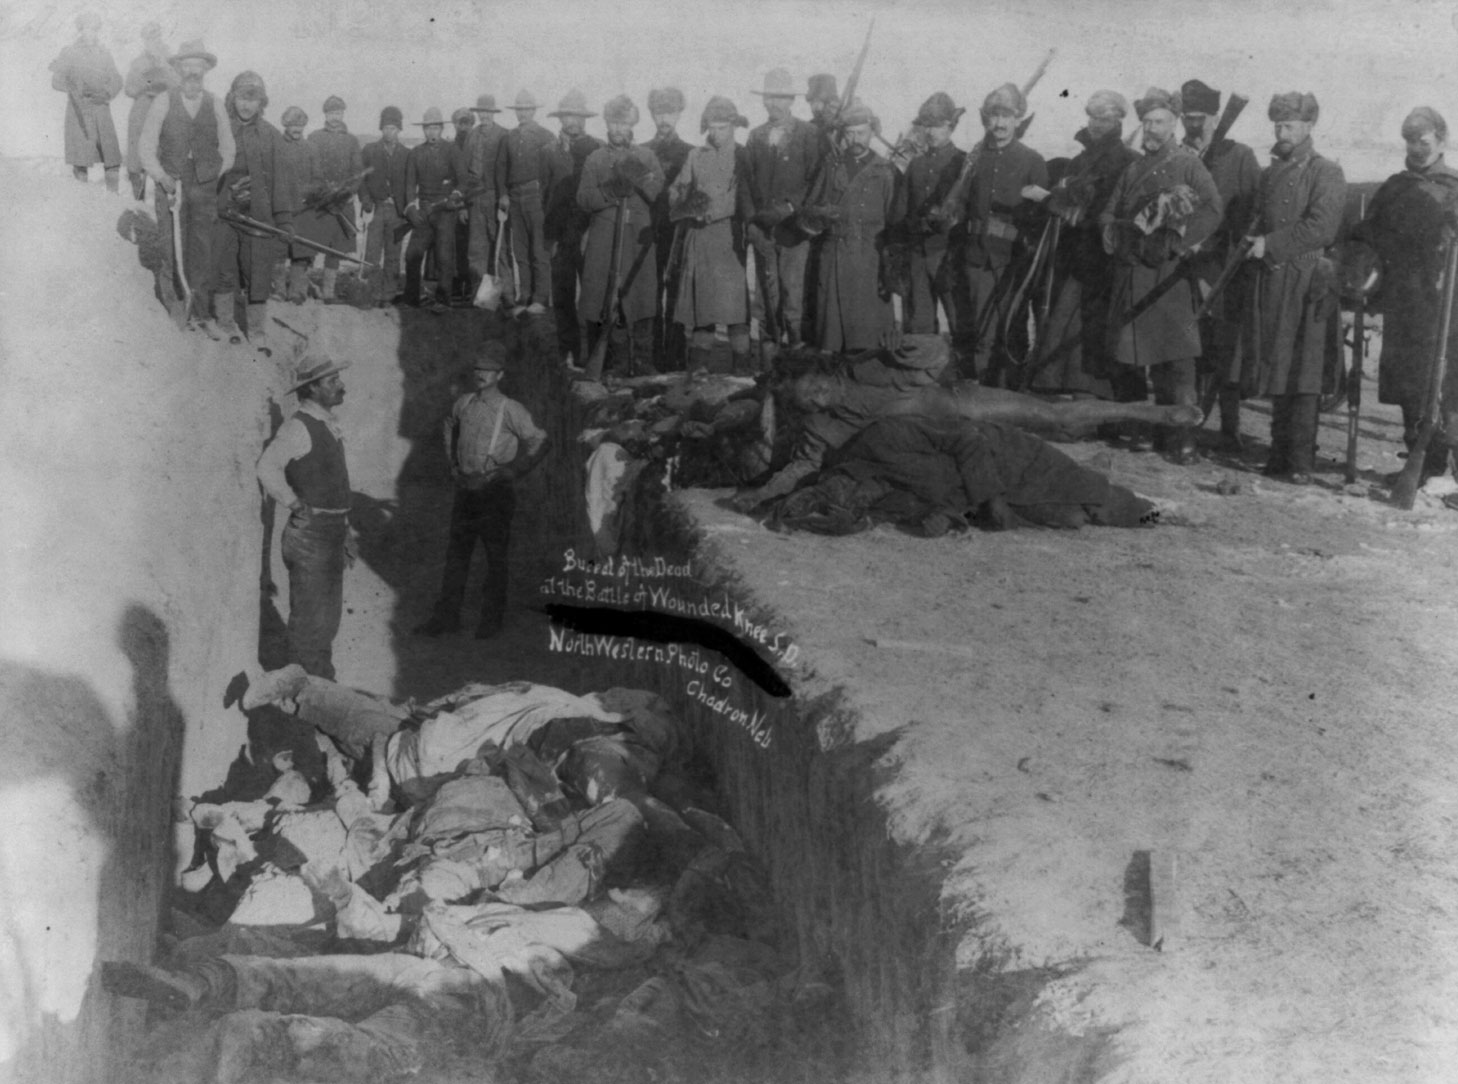 Burial-Native-Americans-Wounded-Knee-South-Dakota-1891